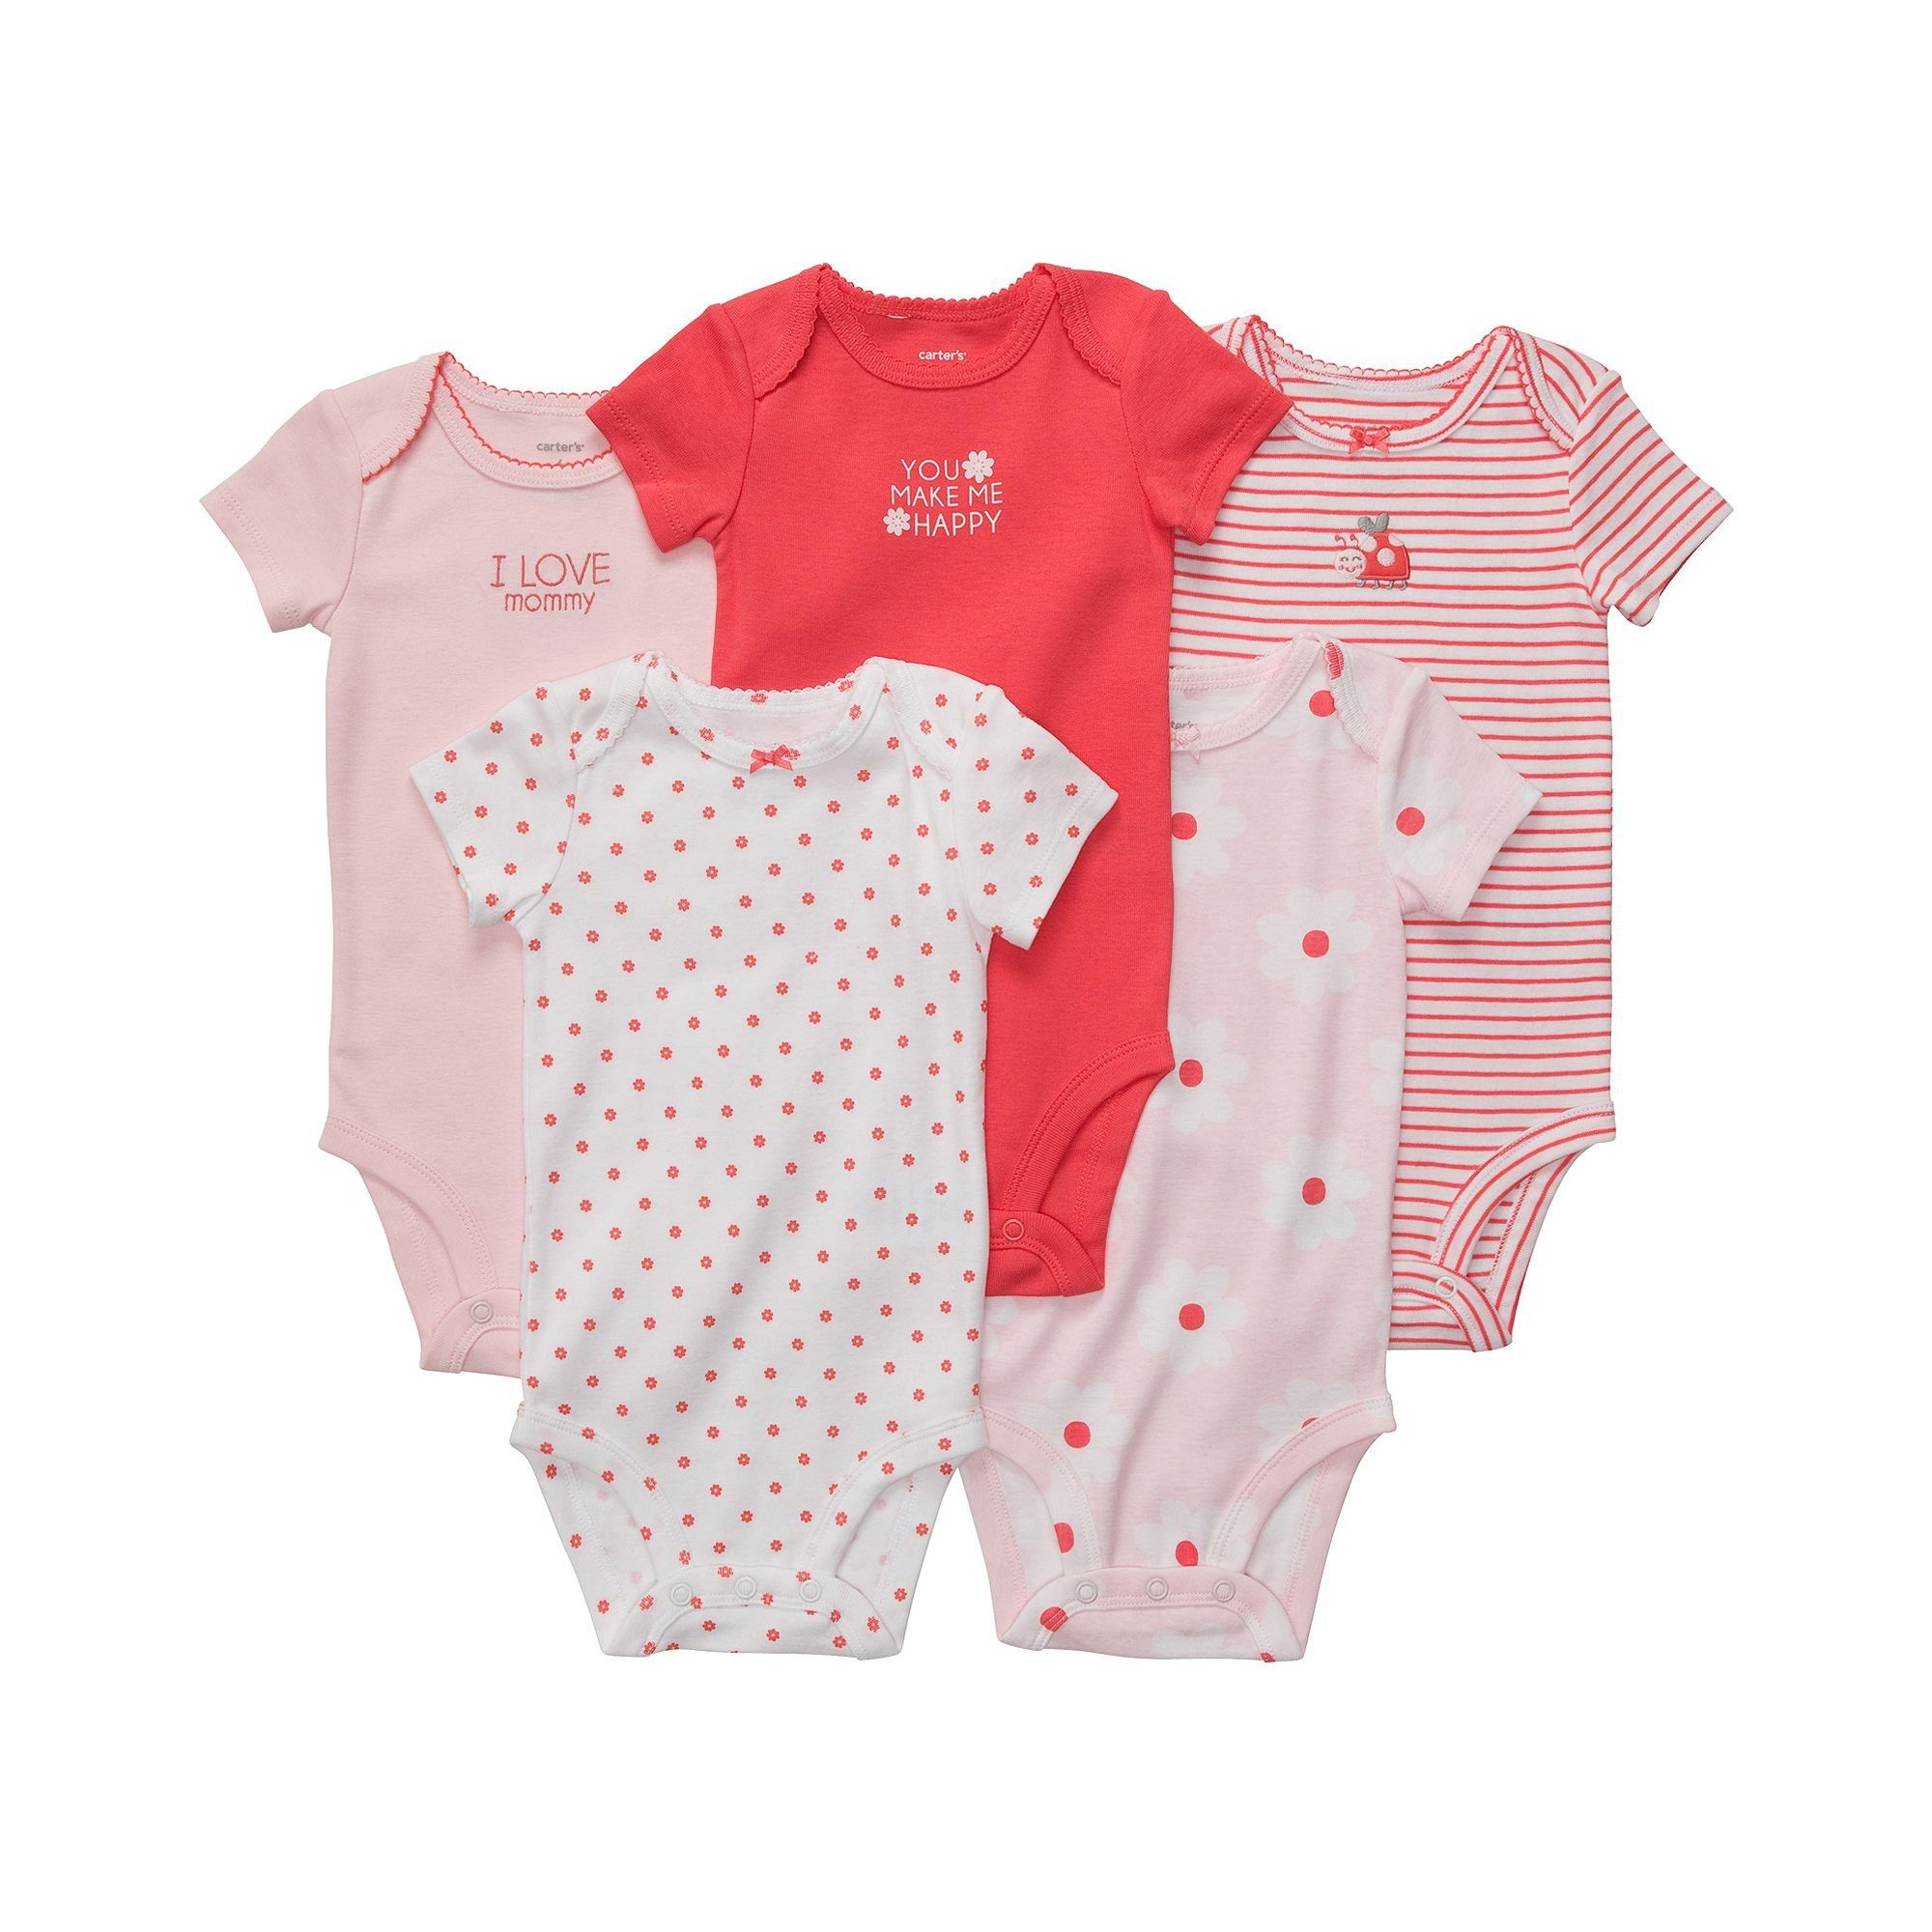 Baby Coral-6 Months Carters Graphic Romper